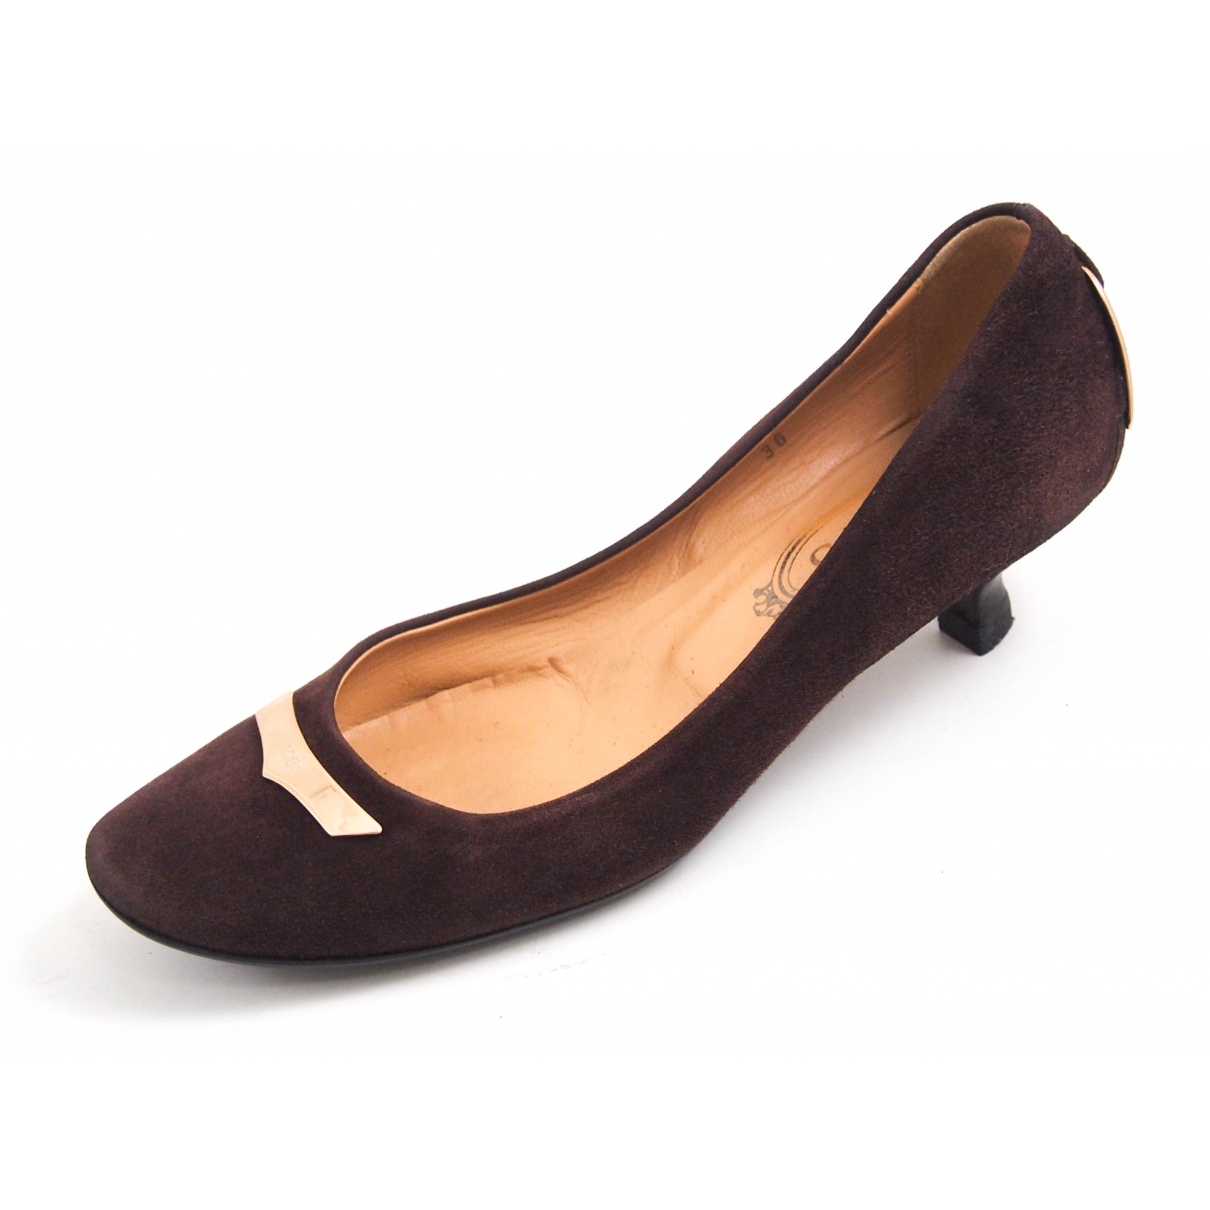 Tod's N Brown Suede Heels for Women 36 EU